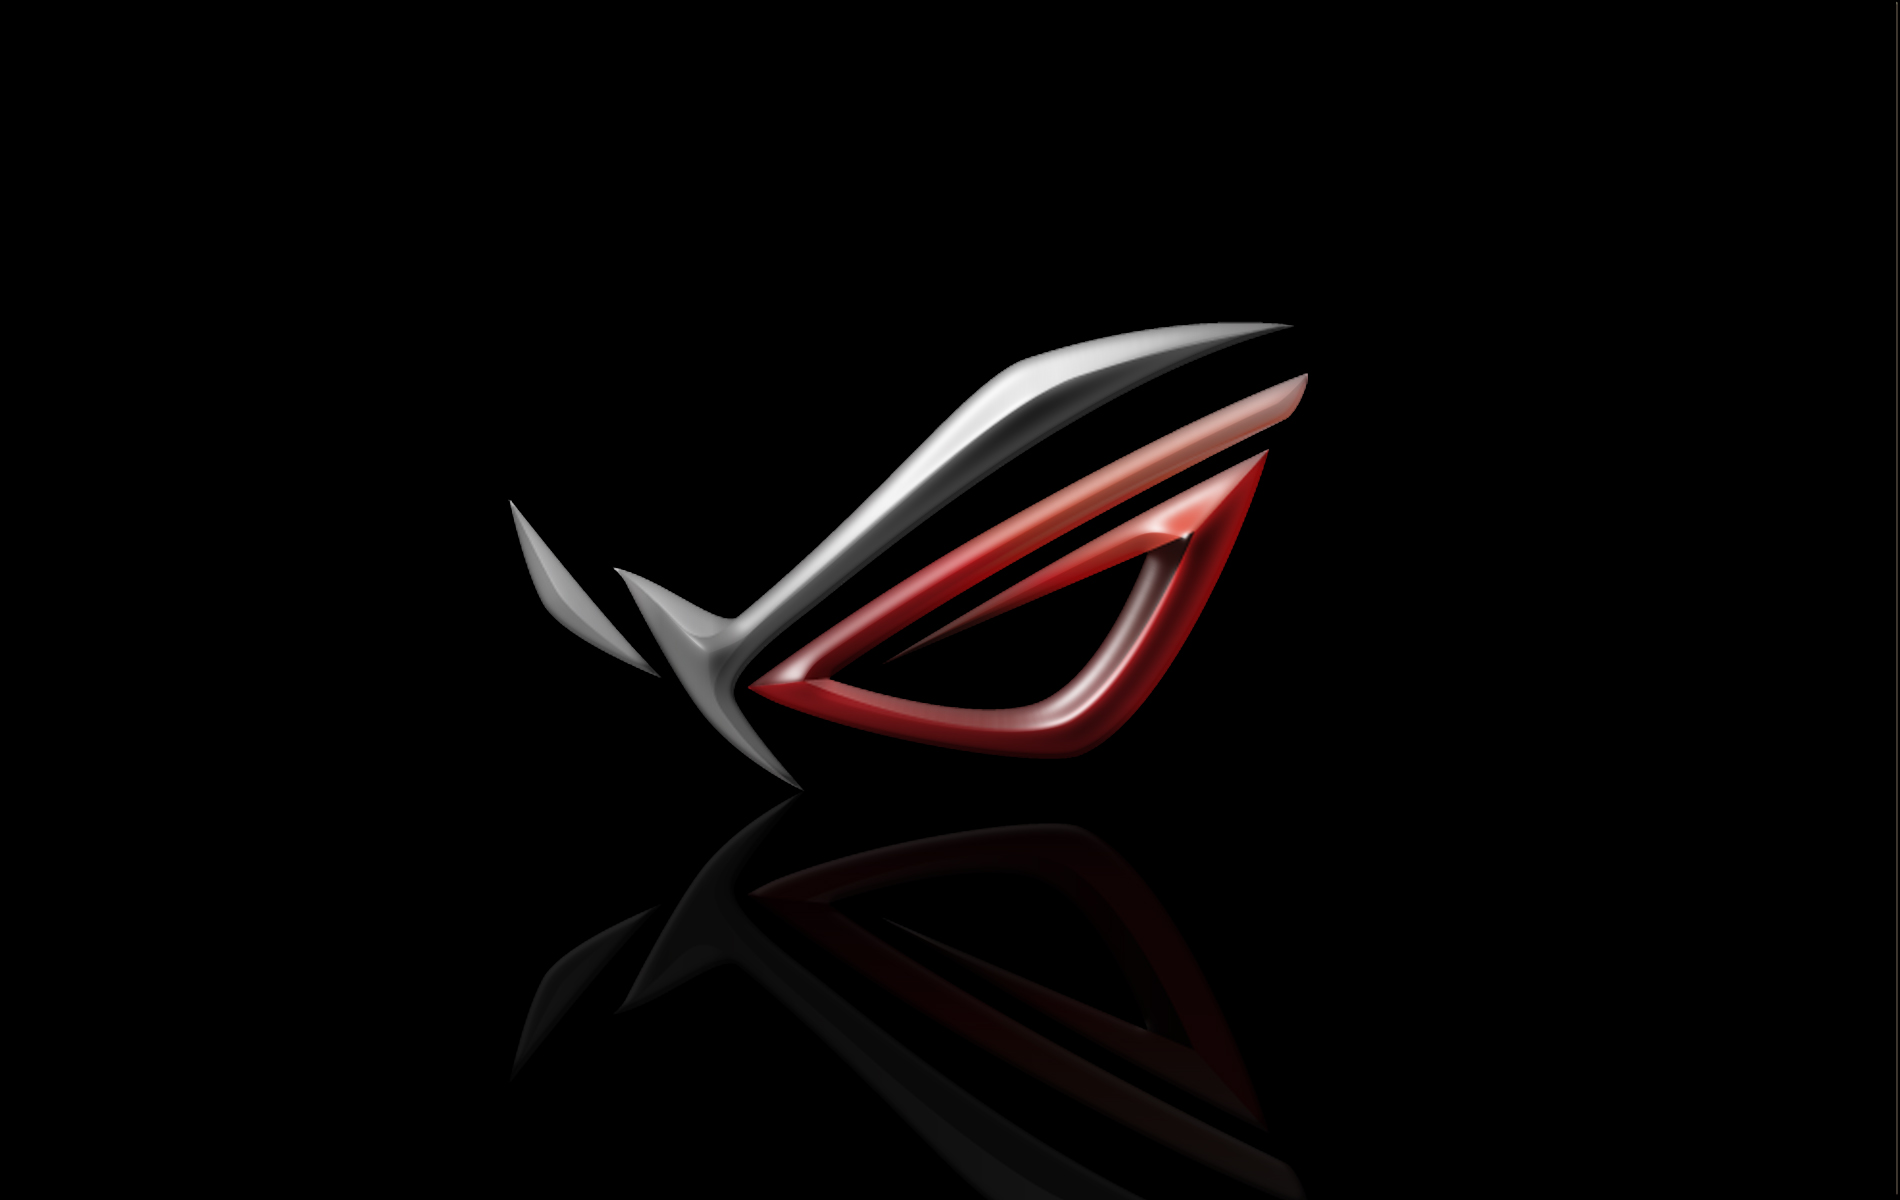 rog wallpaper collection 2012 republic of gamers